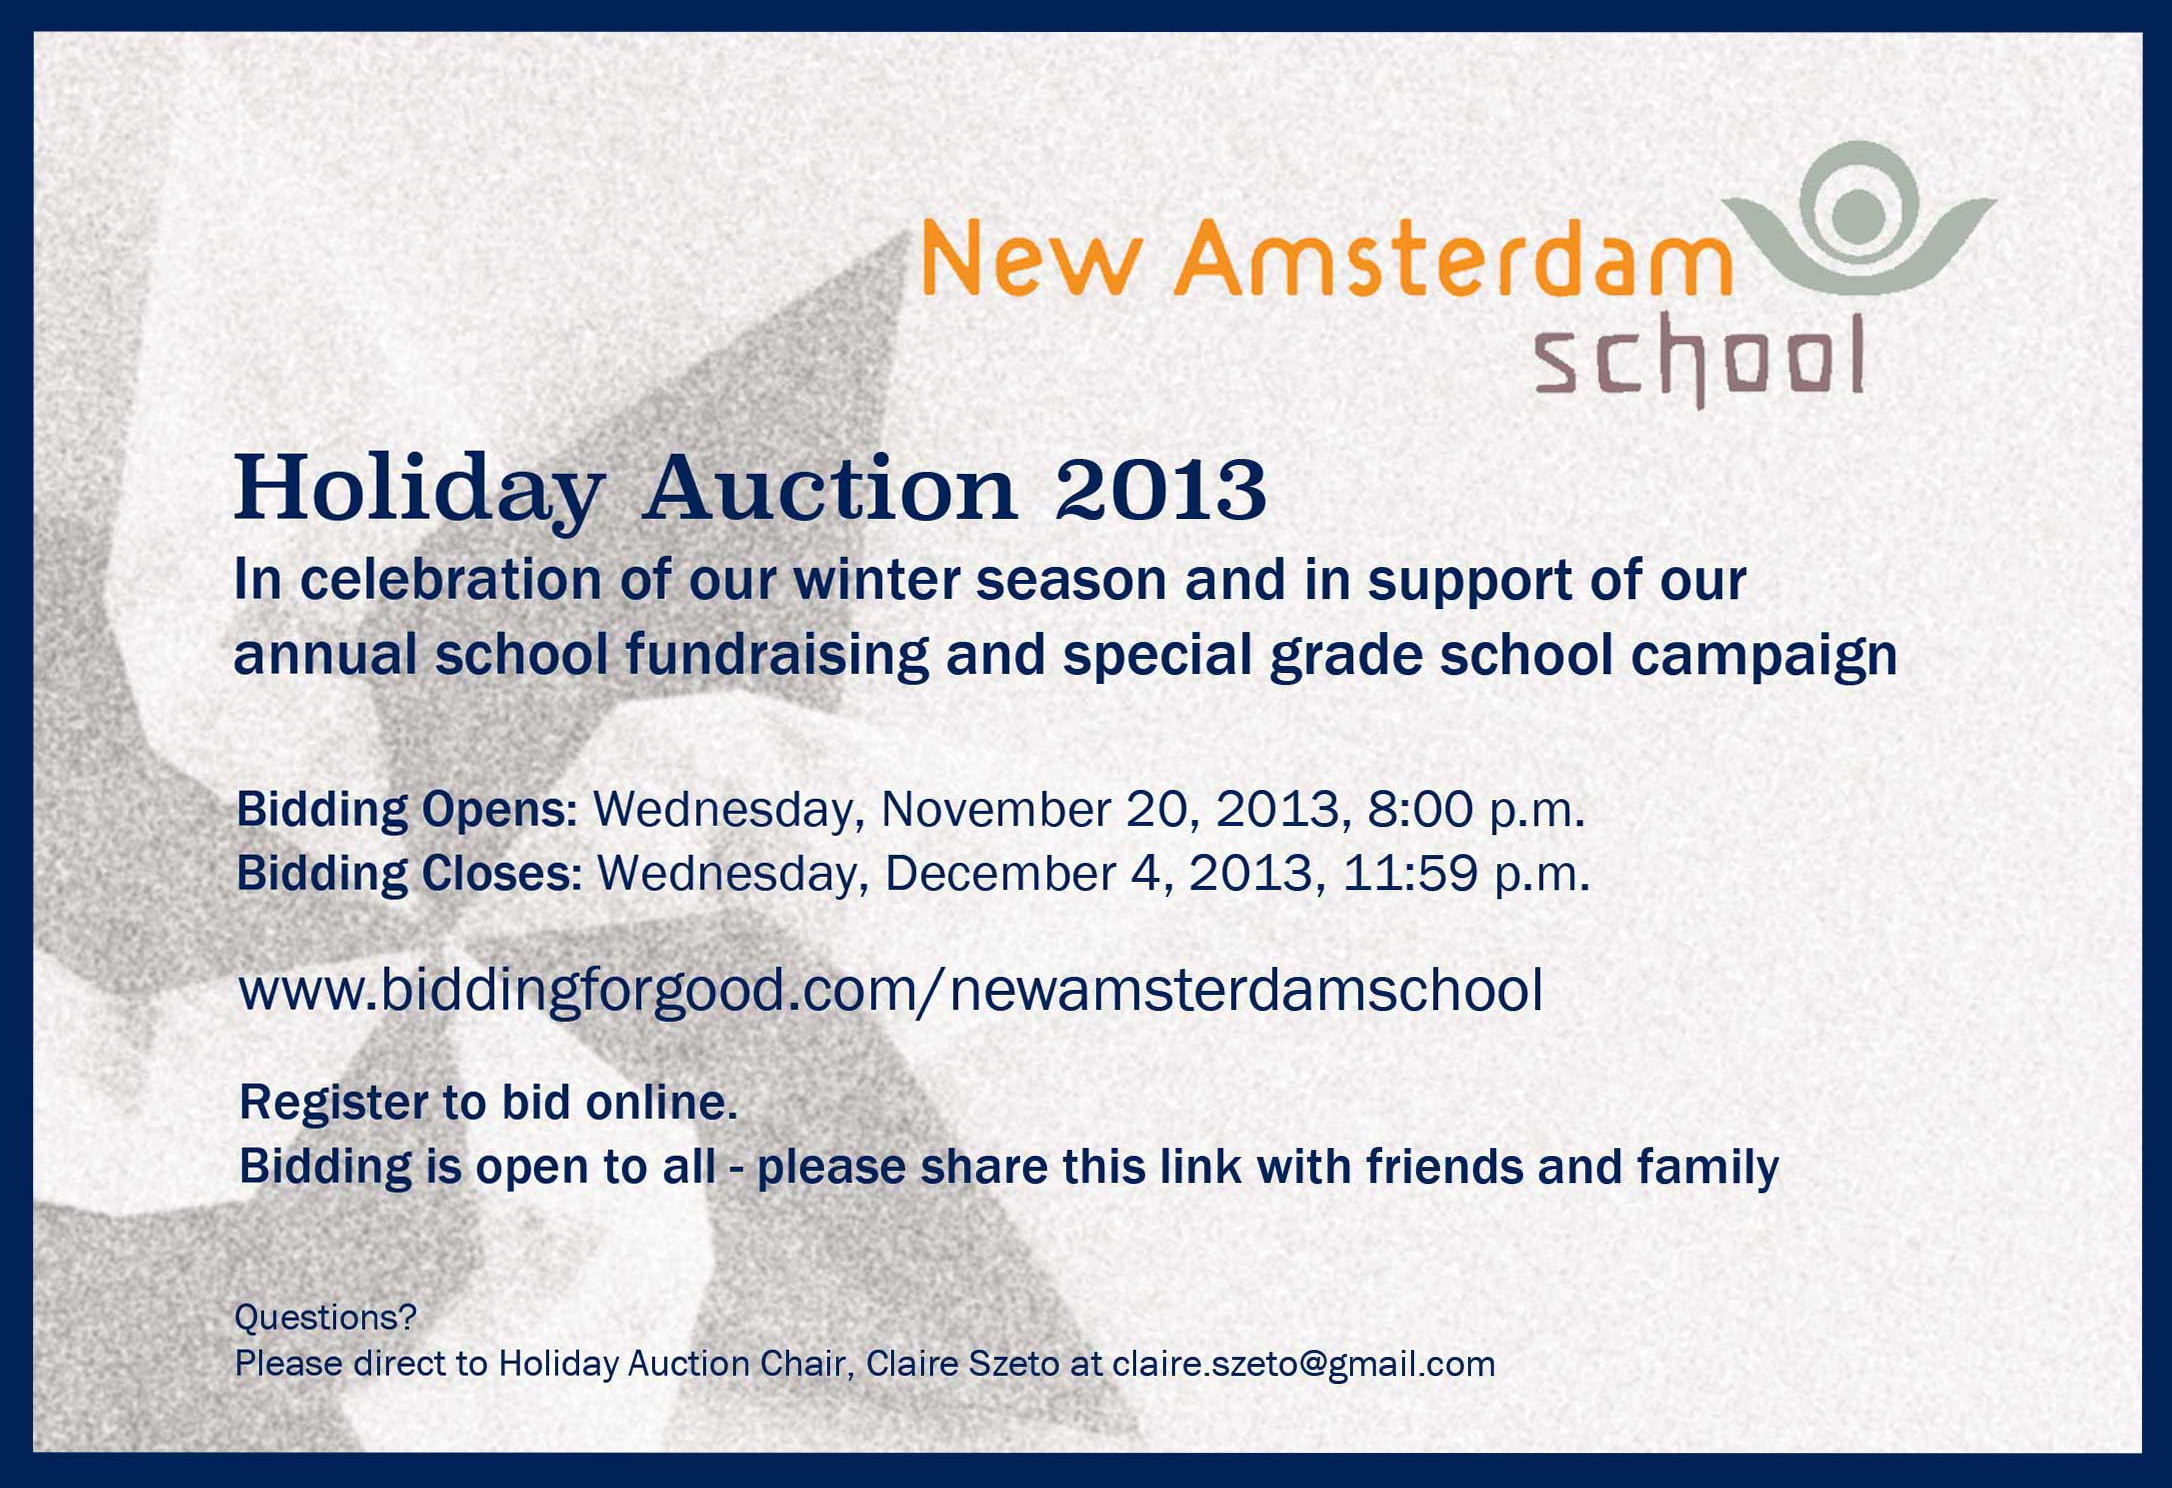 Bidding Extended to 11:59 PM on Sunday 12/8!  www.biddingforgood.com/newamsterdamschool